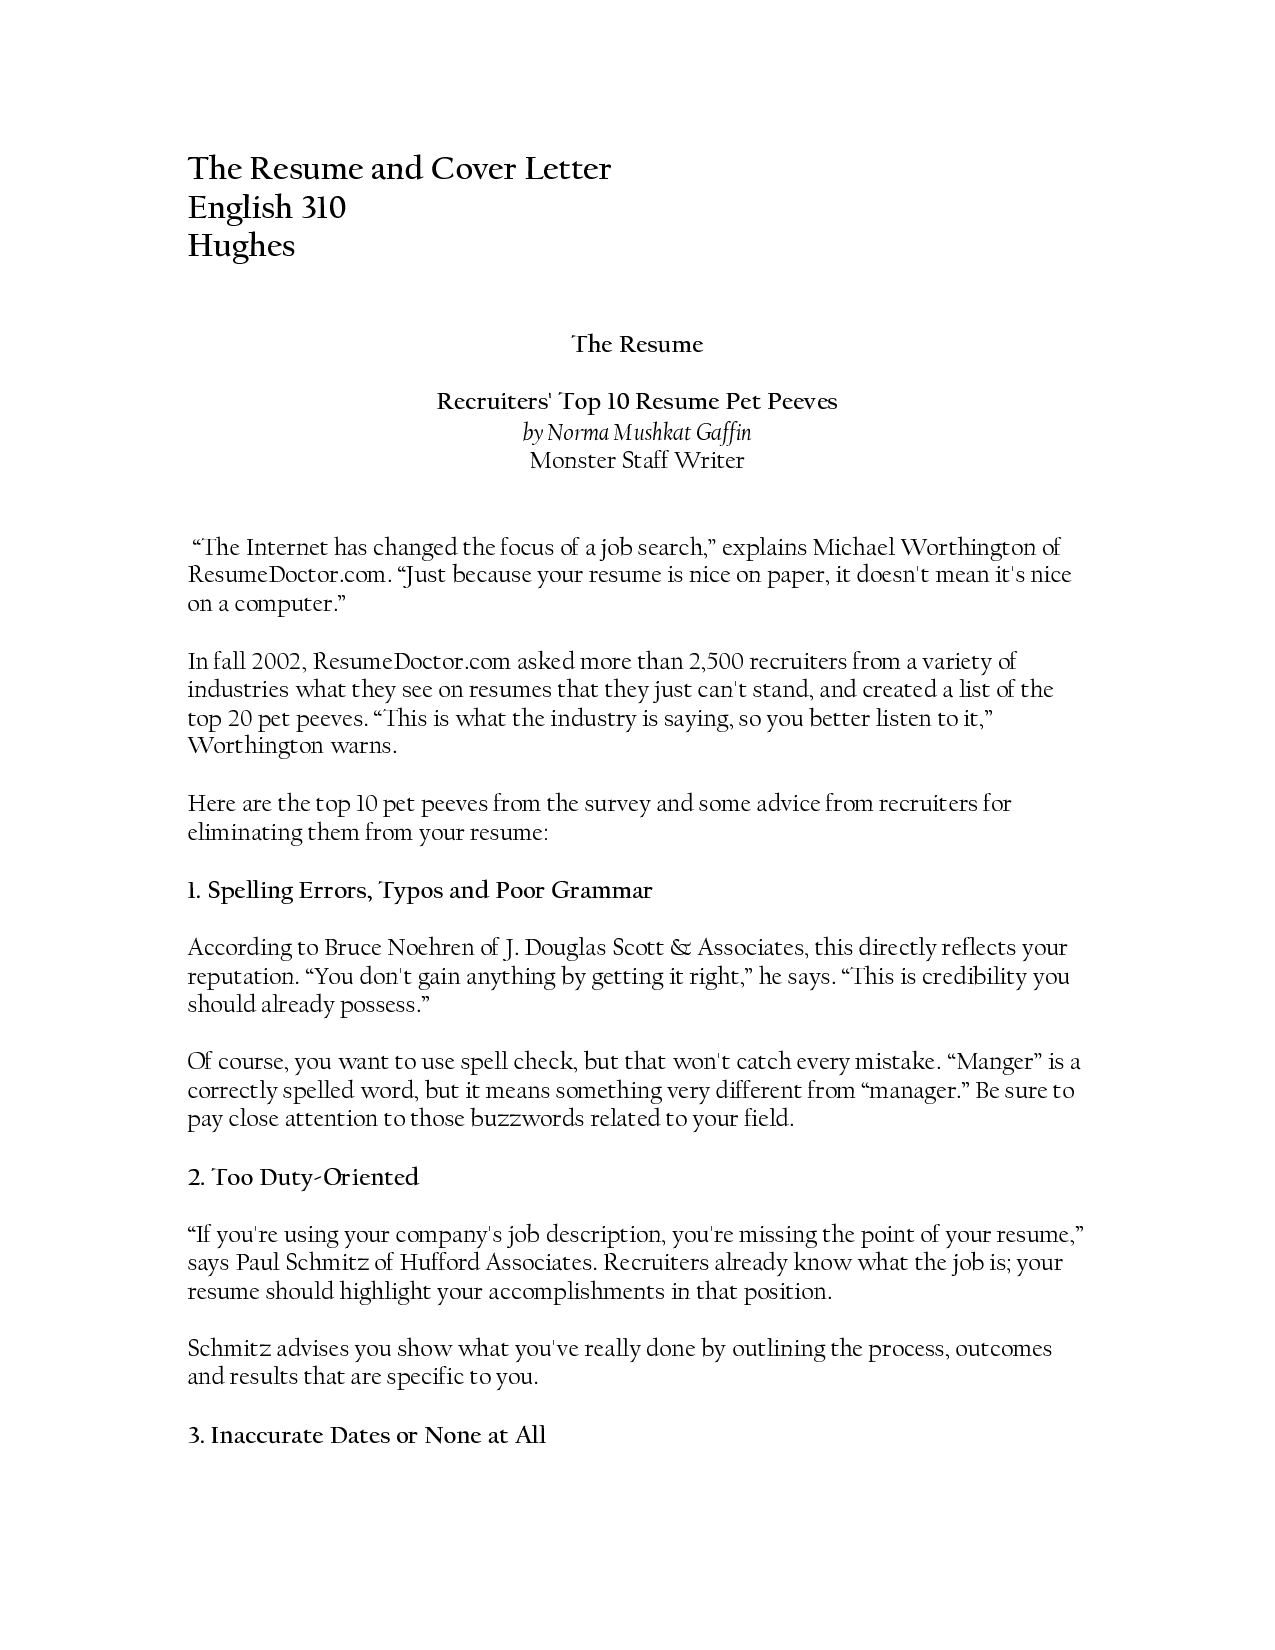 format relocation cover letter and letter relocation  essay on bill gates in hindi essays on struggle of bill gates in hindi